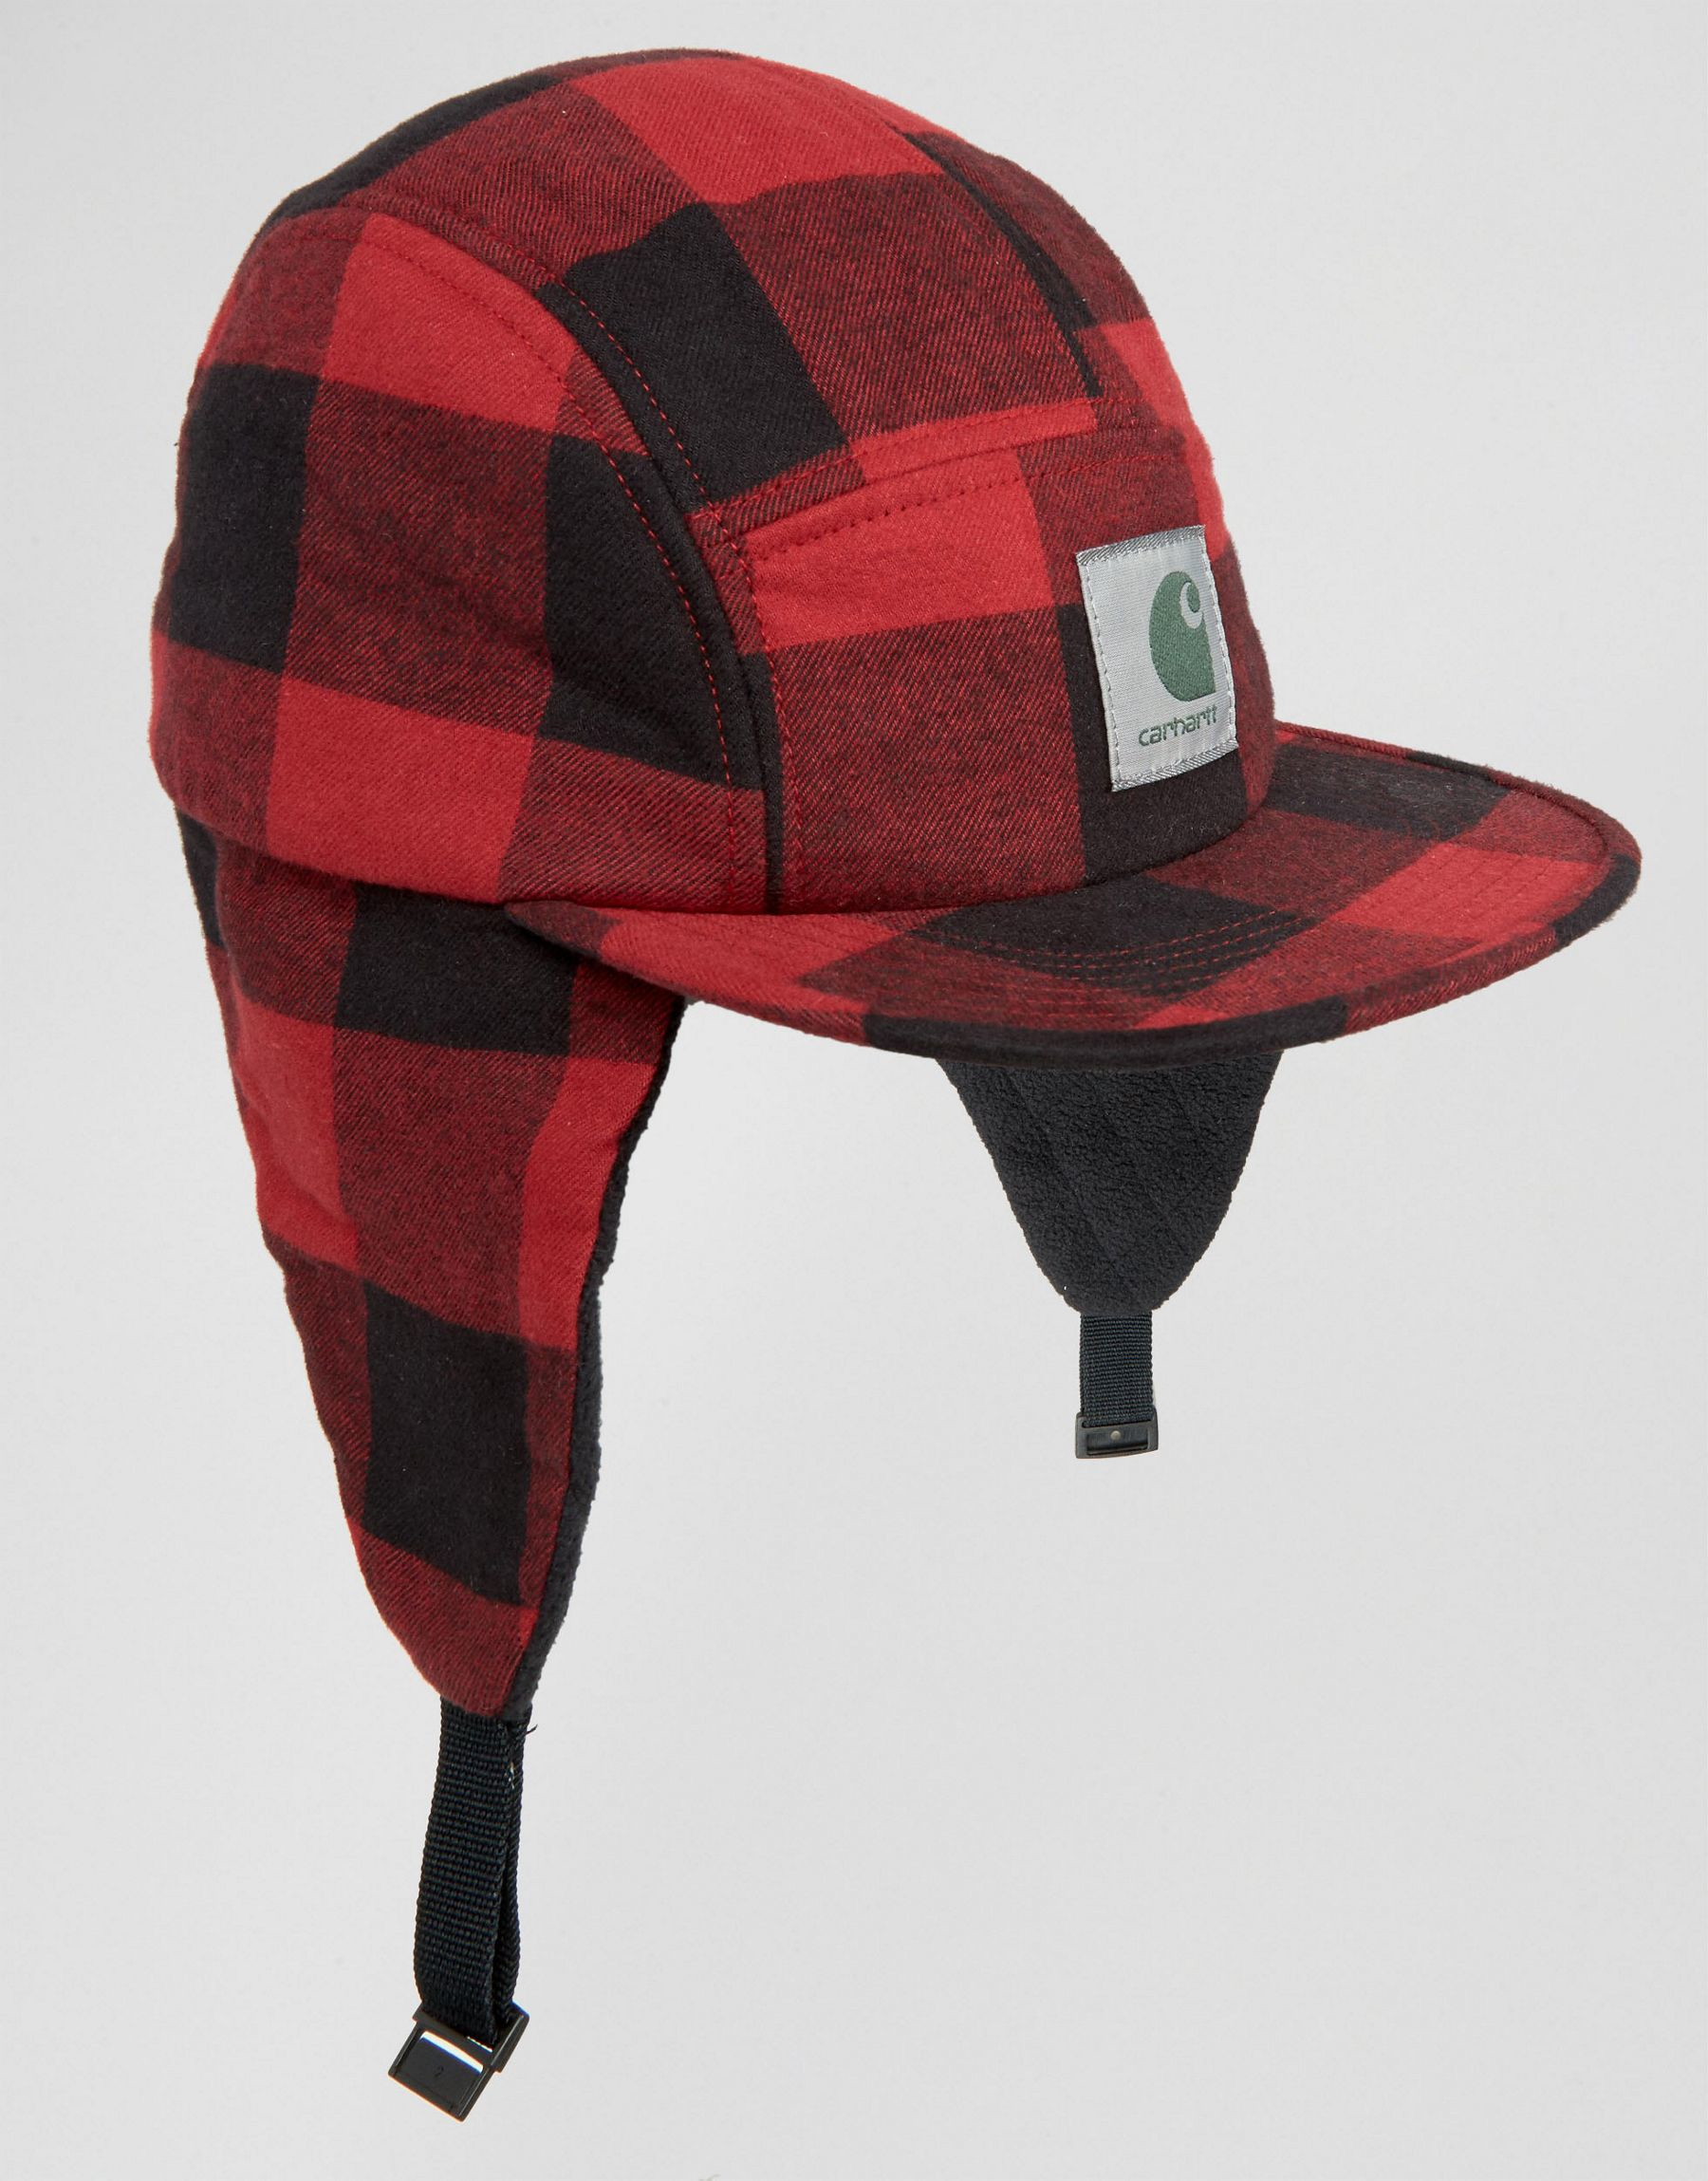 fd441f81de6 Lyst - Carhartt WIP Hat With Ear Flaps in Red for Men